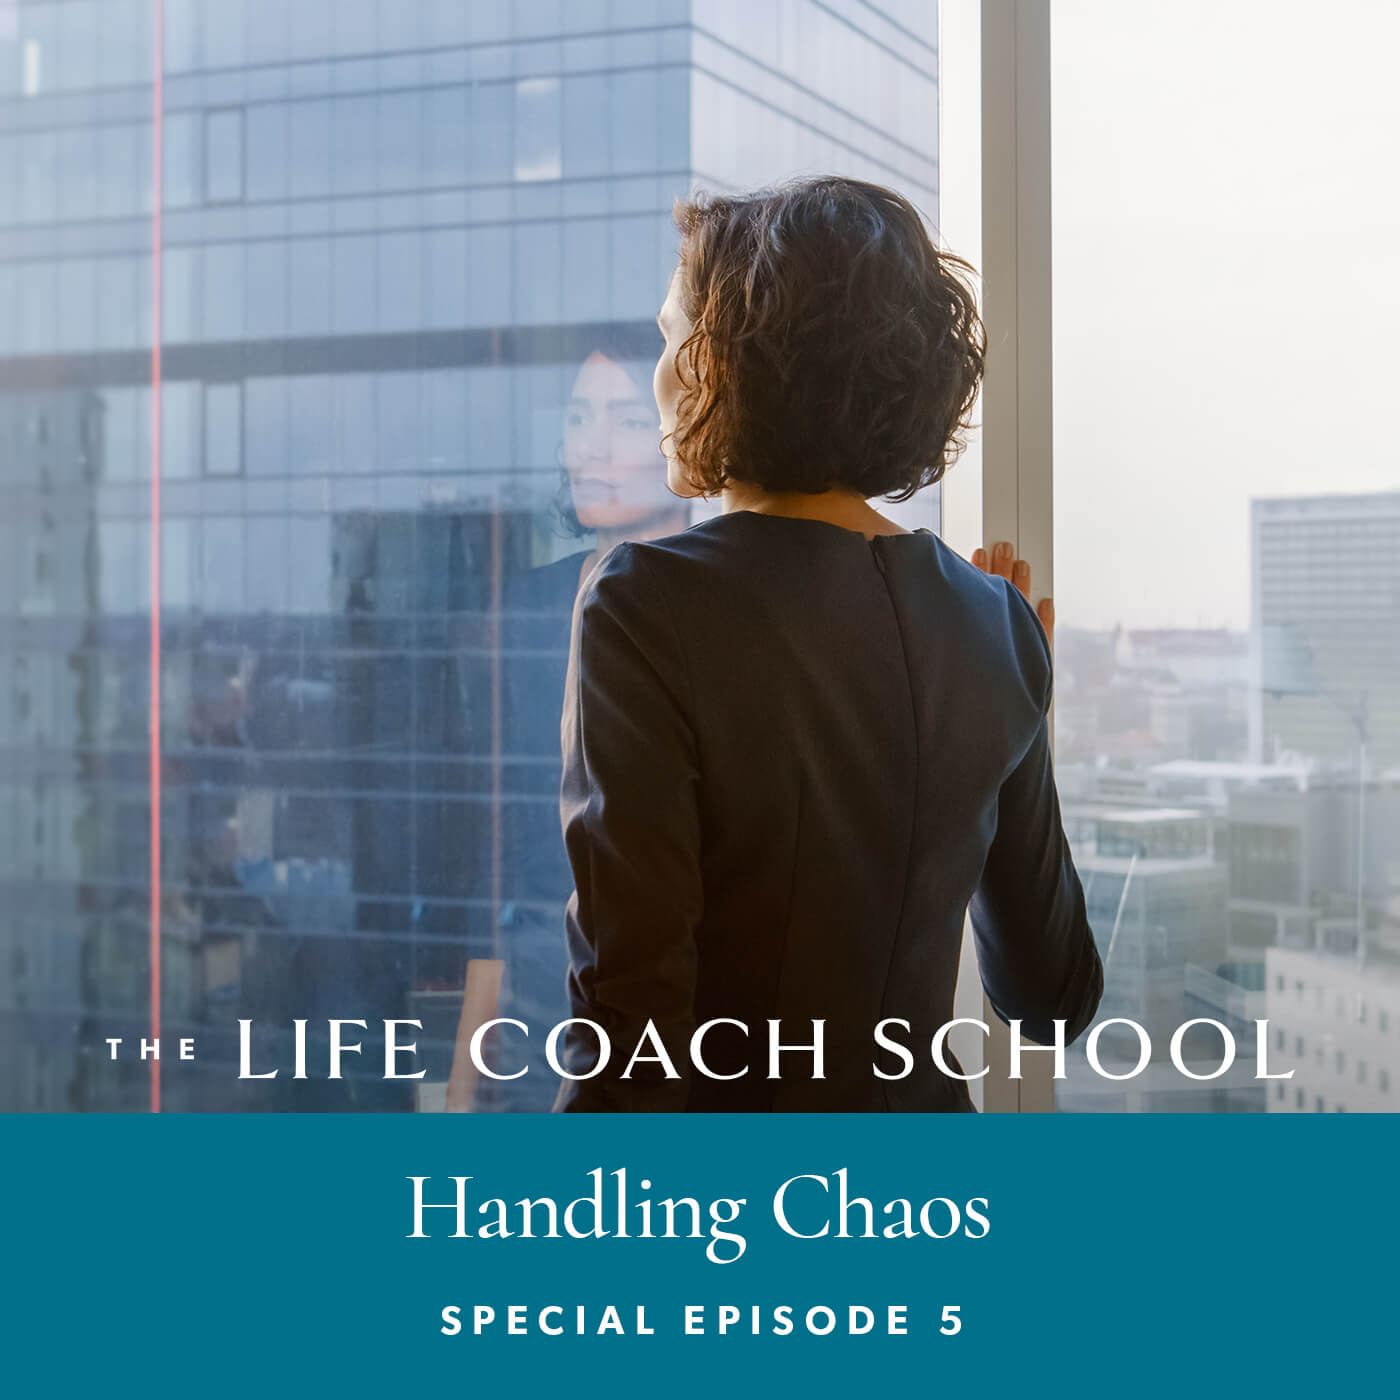 The Life Coach School Podcast with Brooke Castillo | Special Episode | Handling Chaos 5